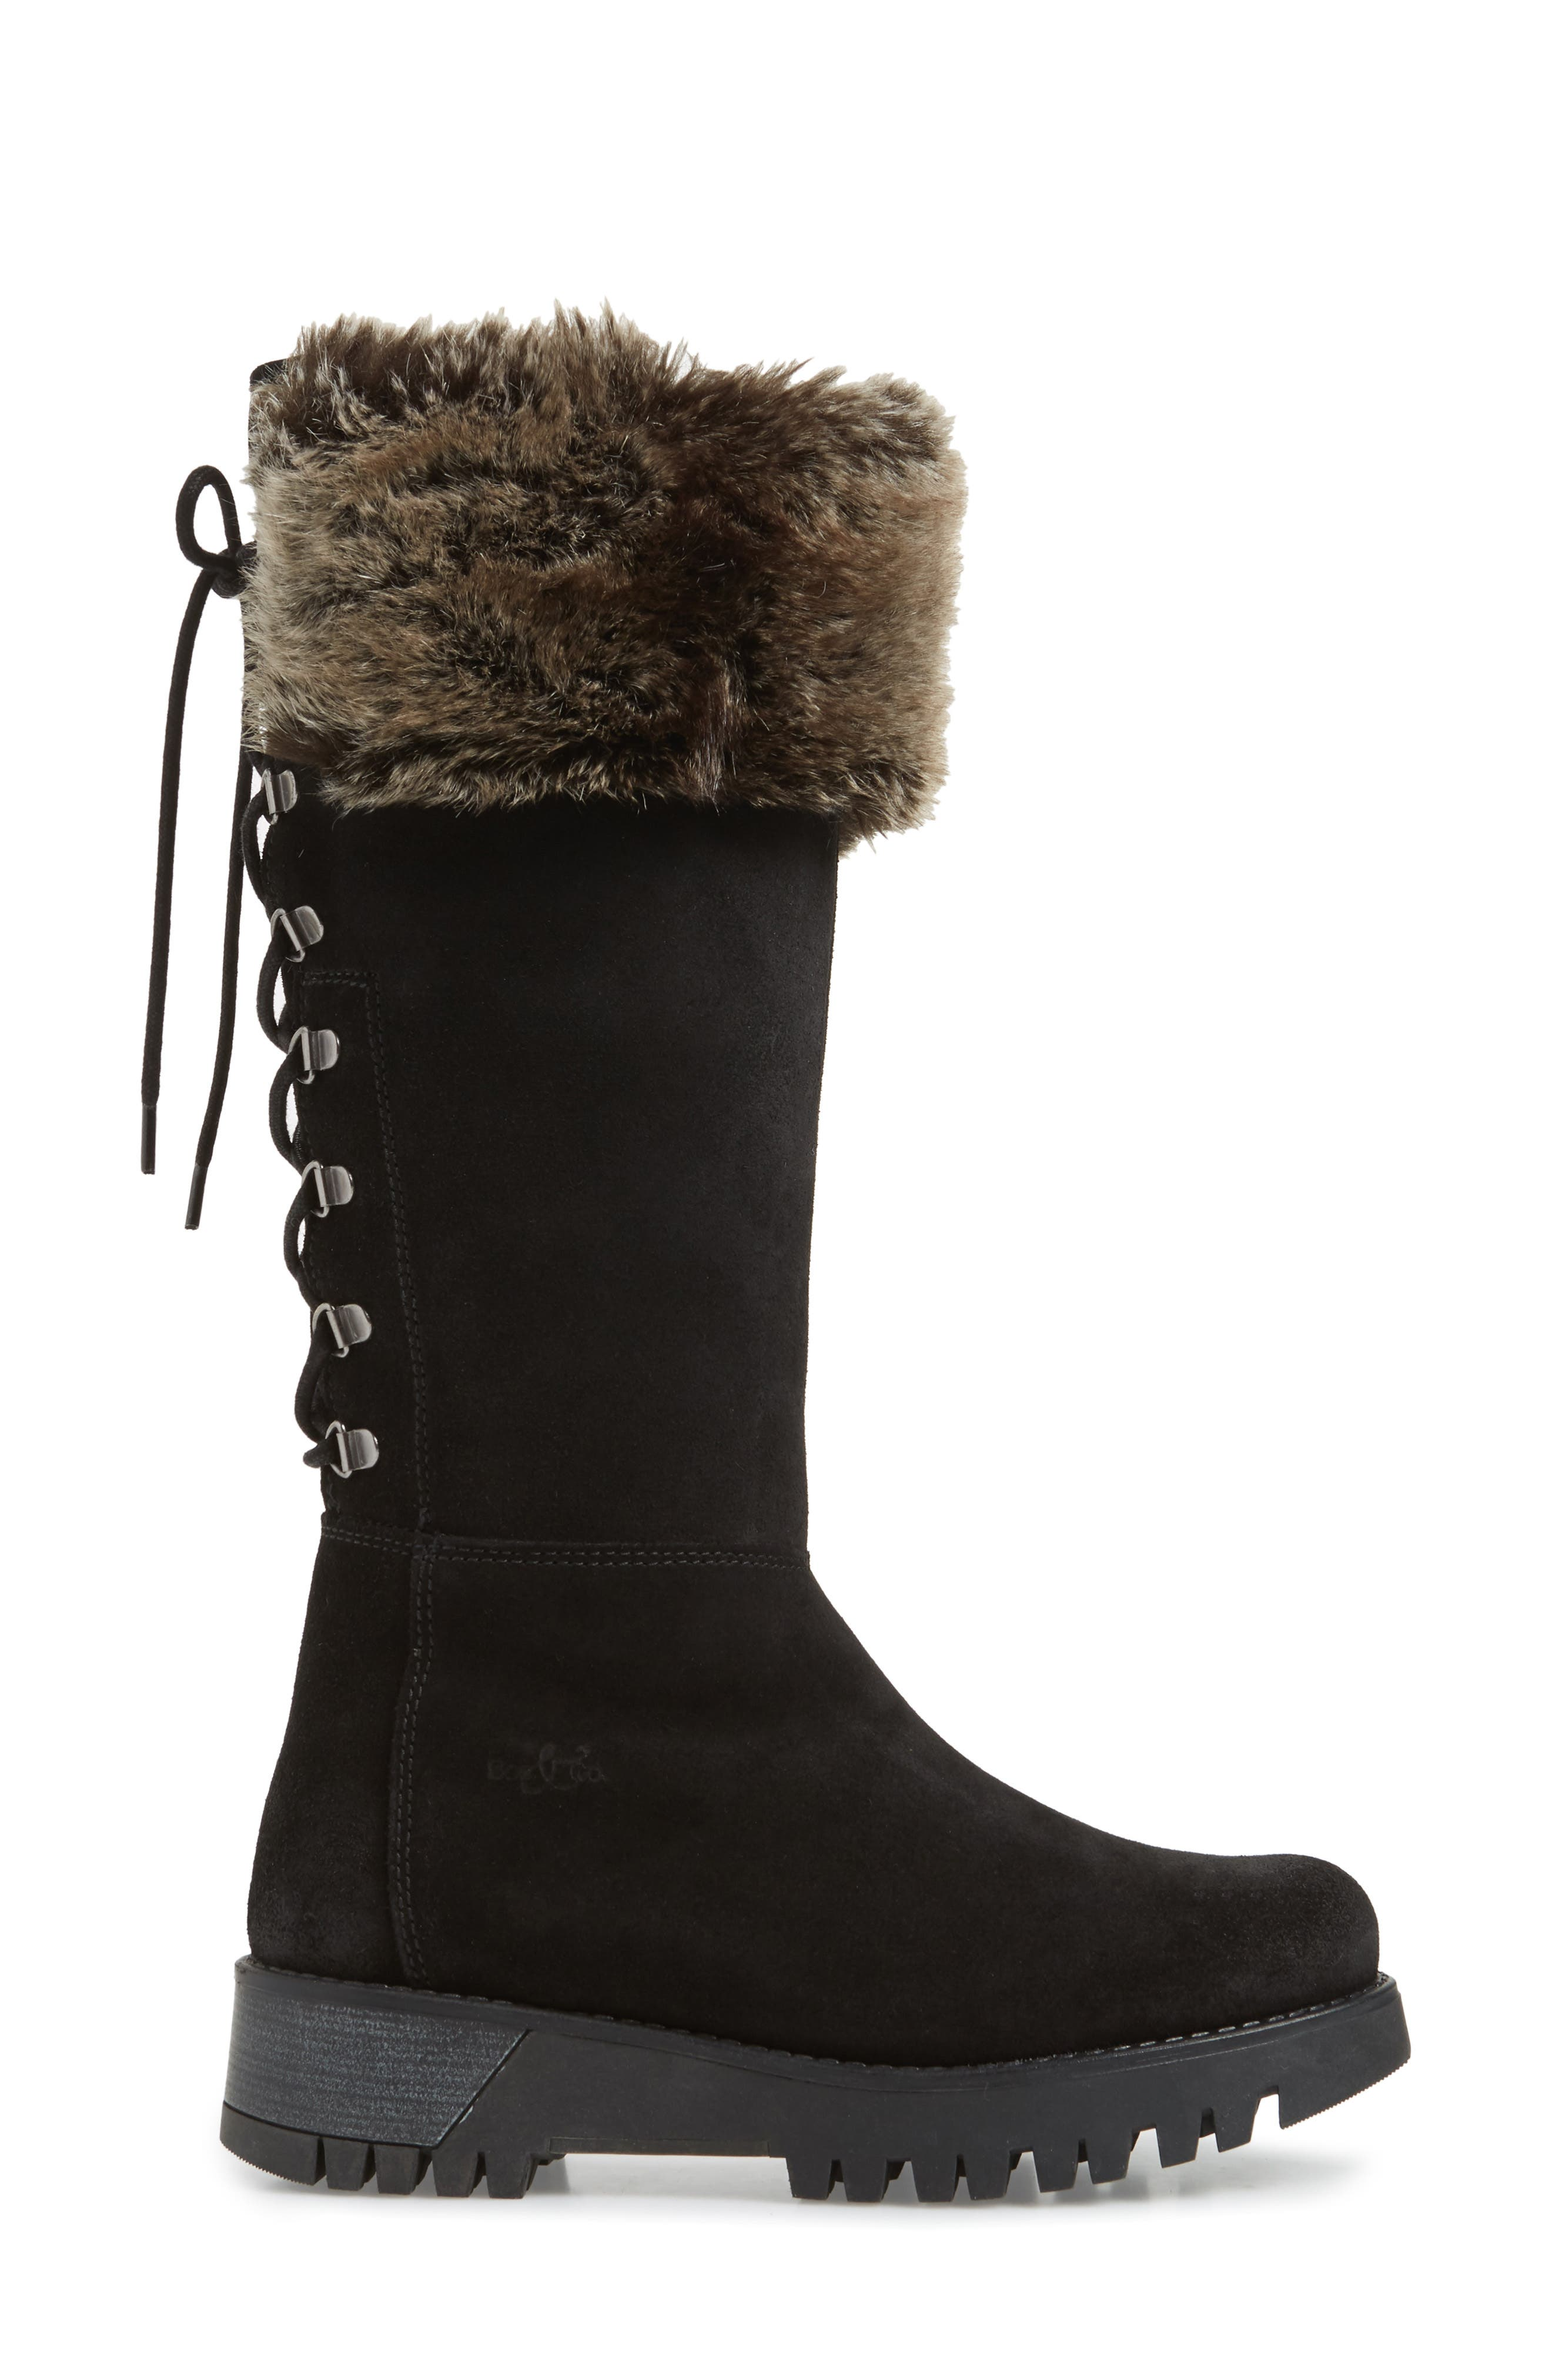 Graham Waterproof Winter Boot with Faux Fur Cuff,                             Alternate thumbnail 3, color,                             BLACK SUEDE